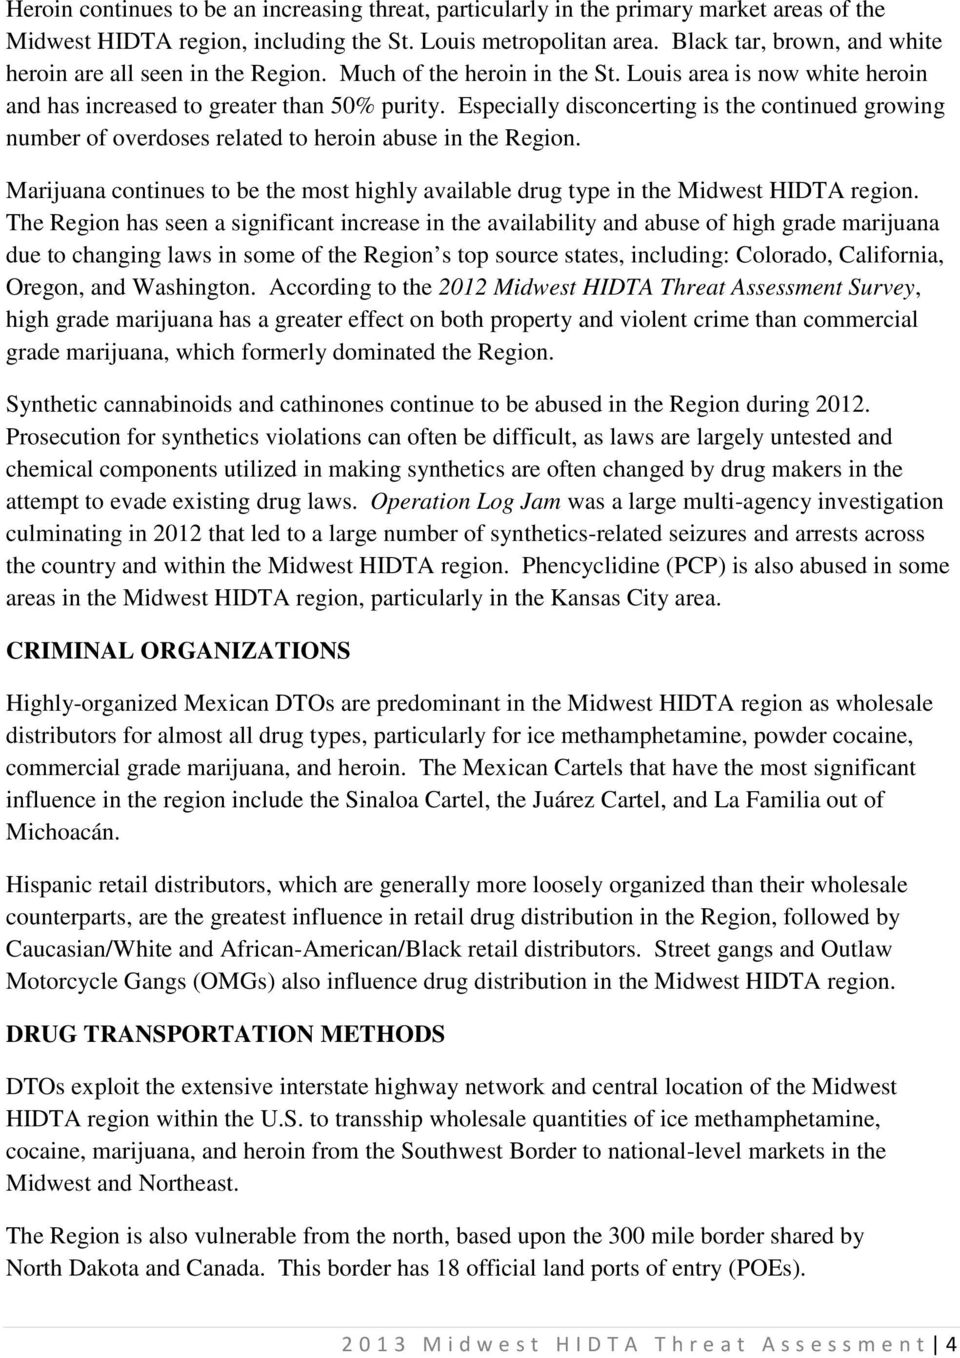 MIDWEST HIDTA INVESTIGATIVE SUPPORT CENTER (ISC) - PDF